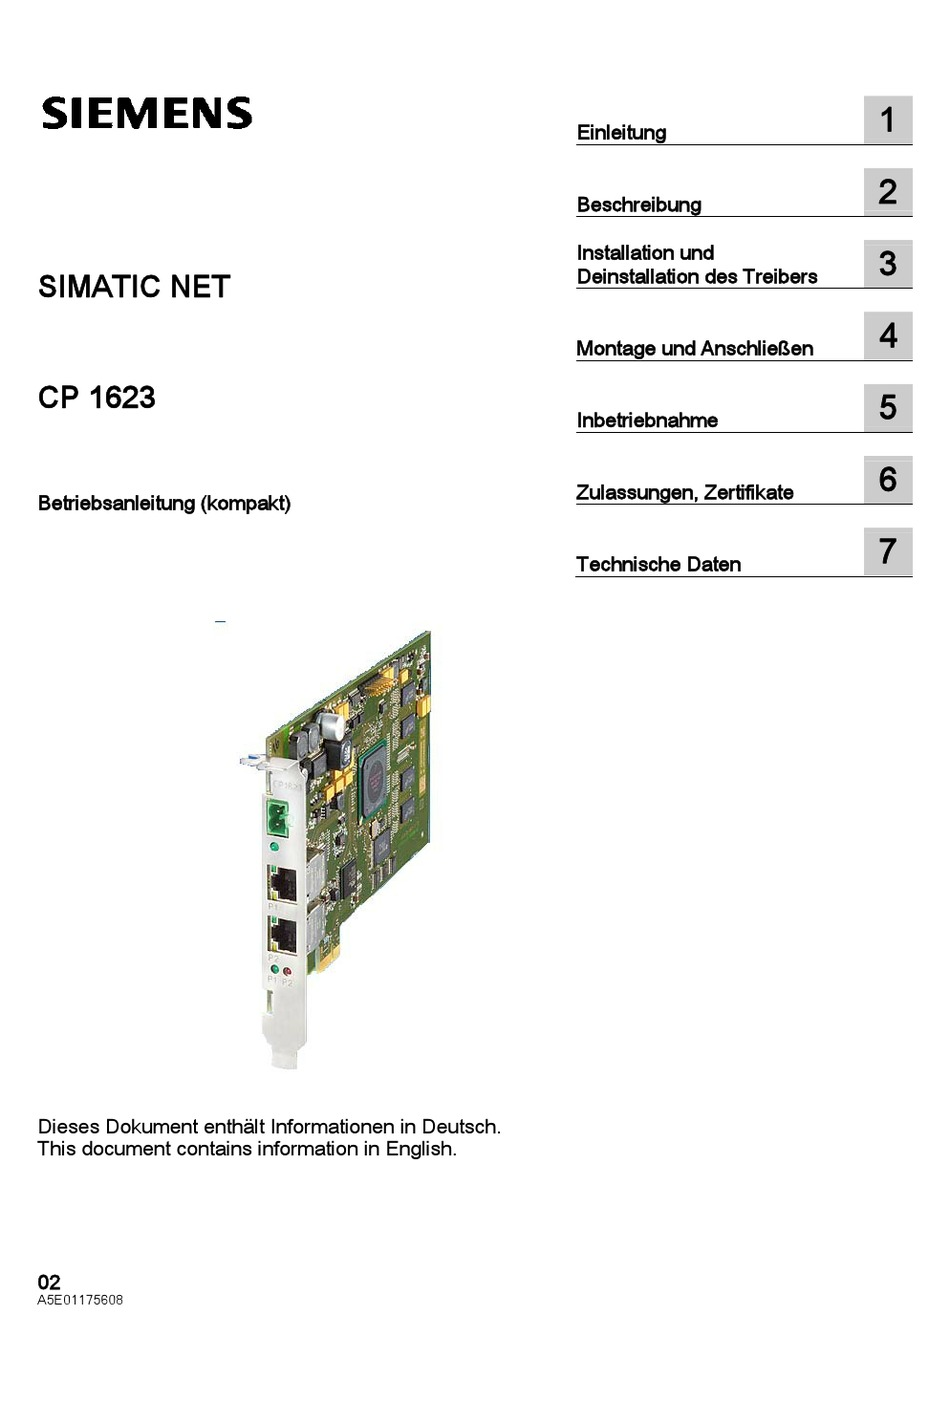 SIEMENS SIMATIC NET CP 1623 OPERATING INSTRUCTIONS MANUAL